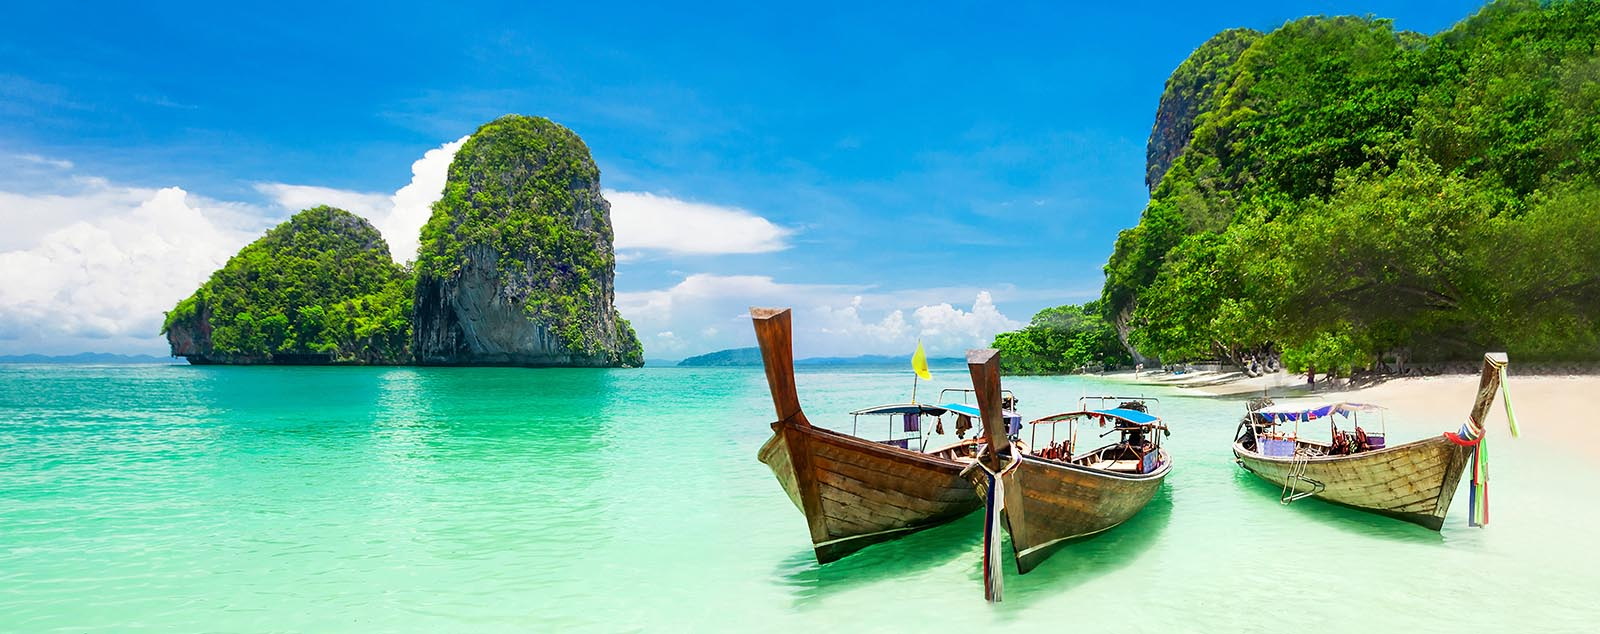 three longtail boats on turquoise water docked at a white sand beach with greenery and limestone cliffs in the background